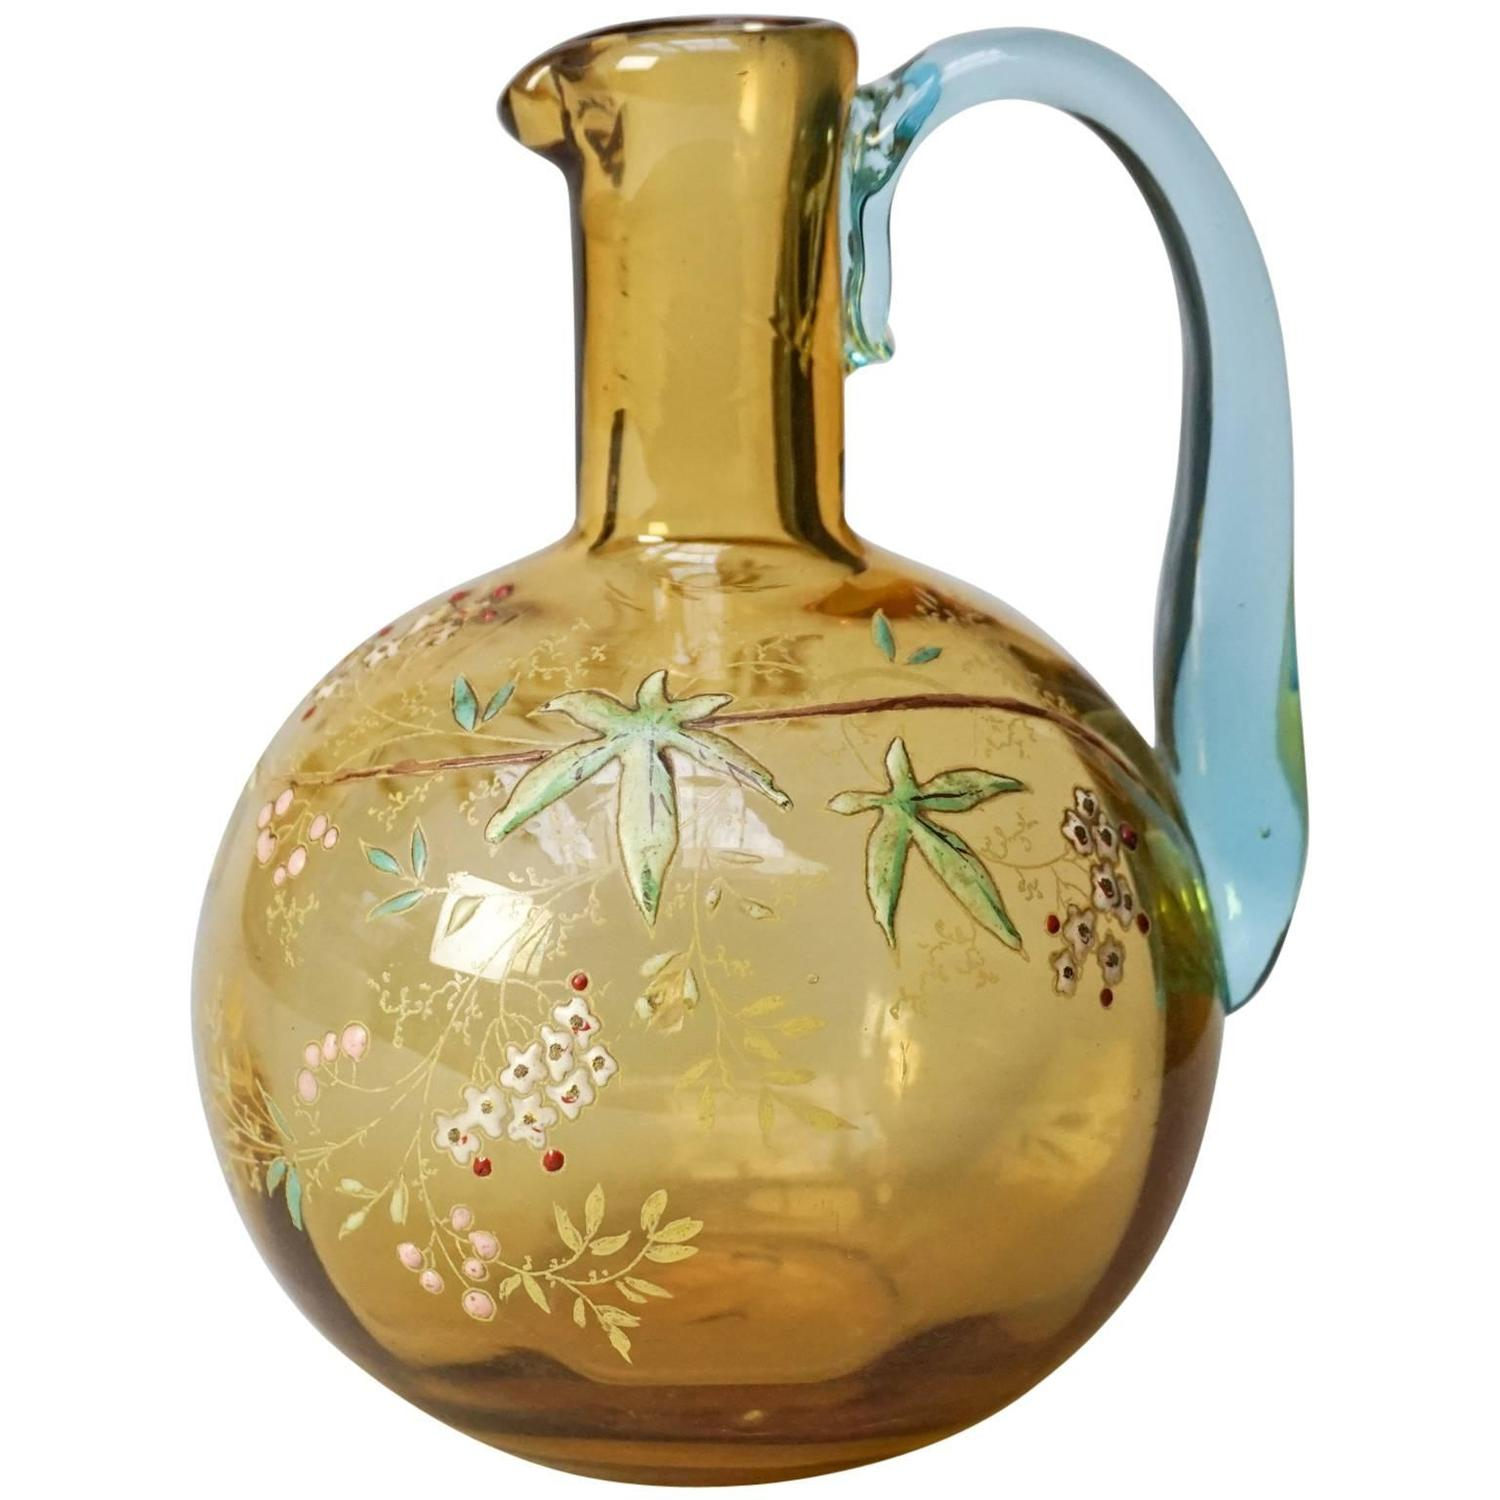 19th century victorian amber glass enameled flower carafe by 19th century victorian amber glass enameled flower carafe by legras for sale at 1stdibs floridaeventfo Image collections